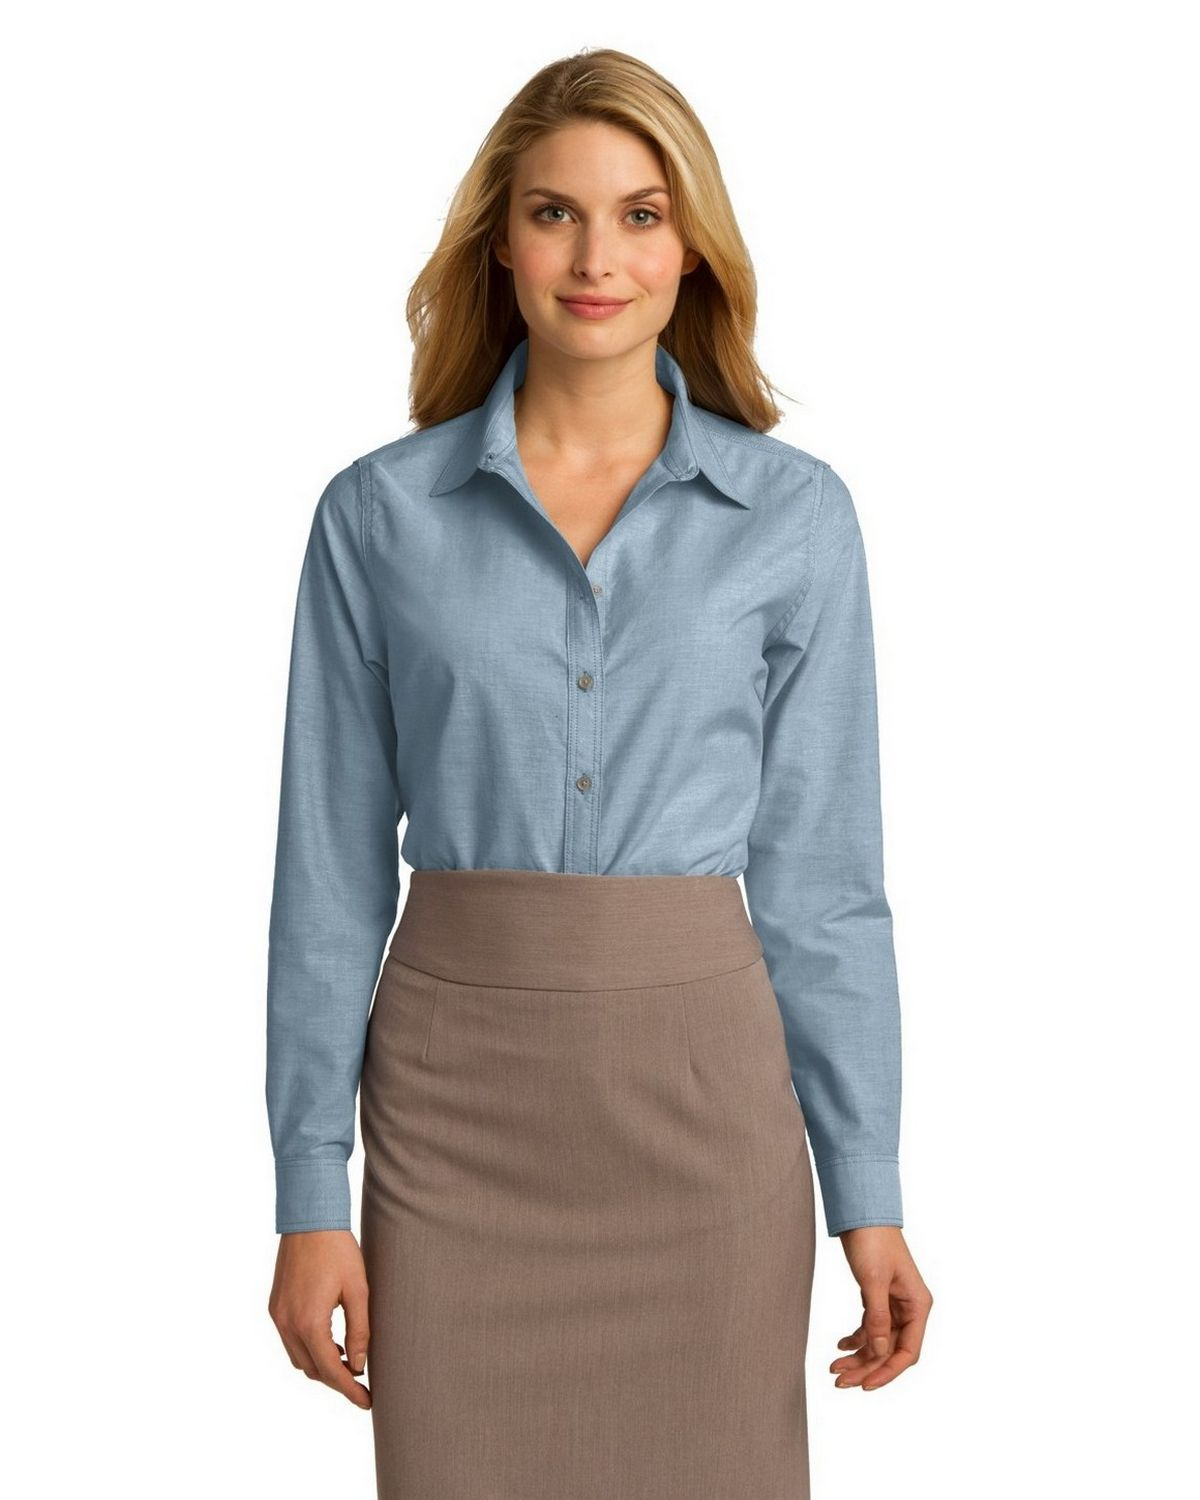 Port authority l653 ladies chambray shirt for Chambray shirt women